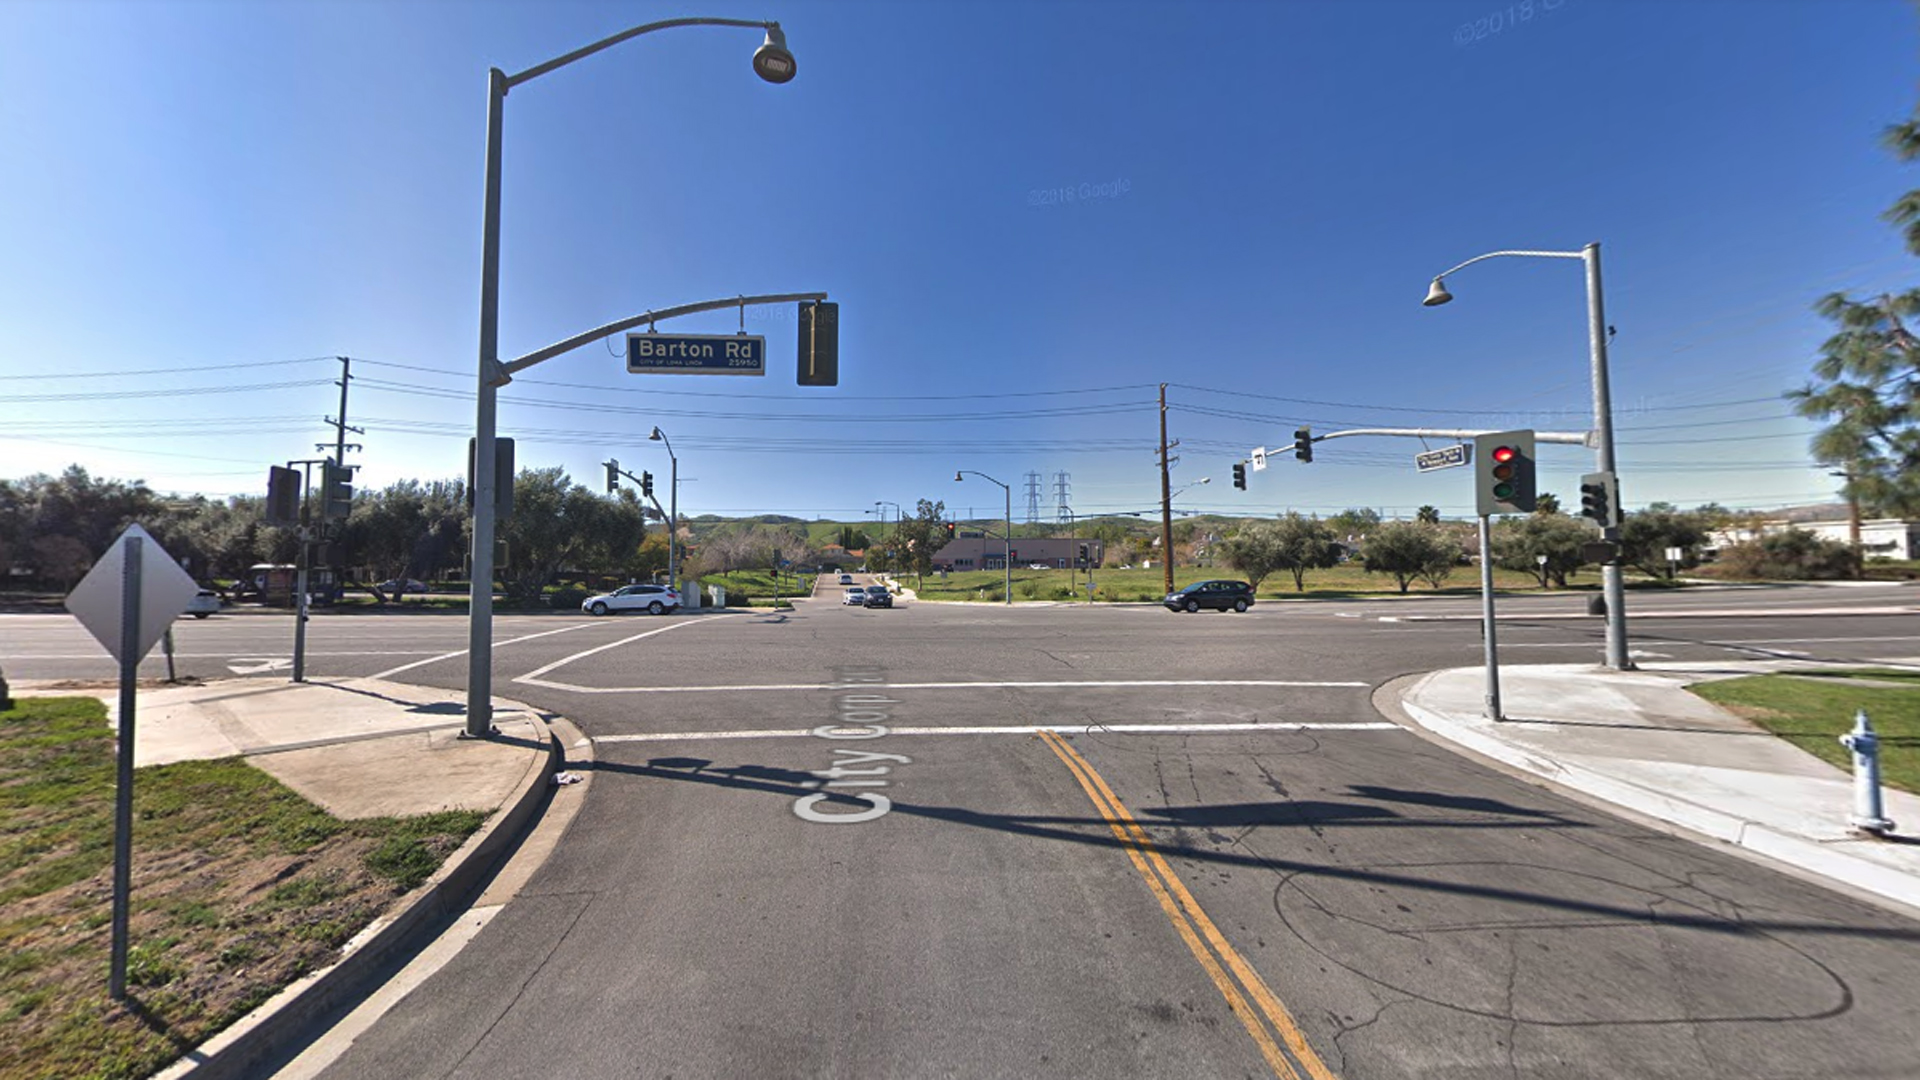 The intersection of Barton Road and Newport Avenue in Loma Linda, as viewed in a Google Street View image.